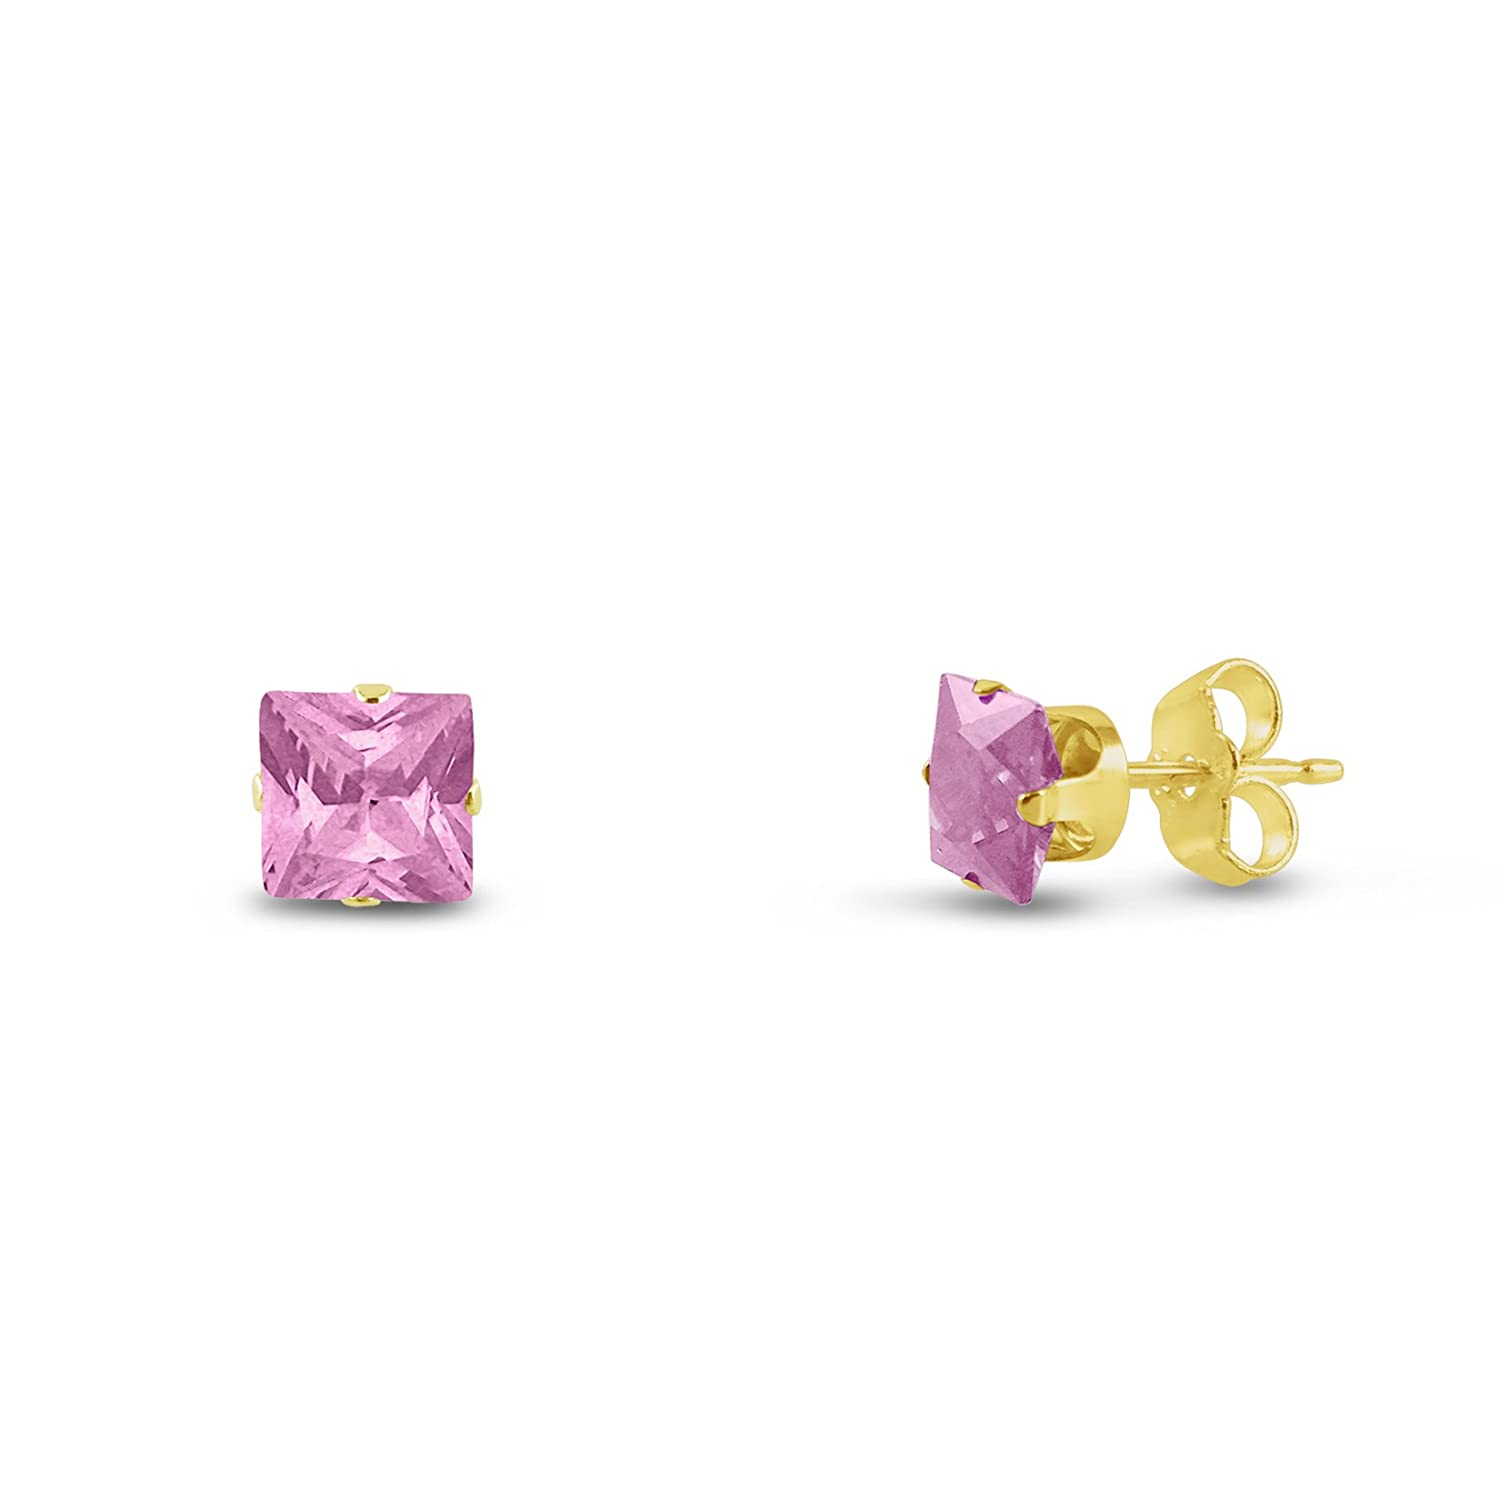 Square 3x3mm Pink CZ Gold Plated Sterling Silver Stud Earrings